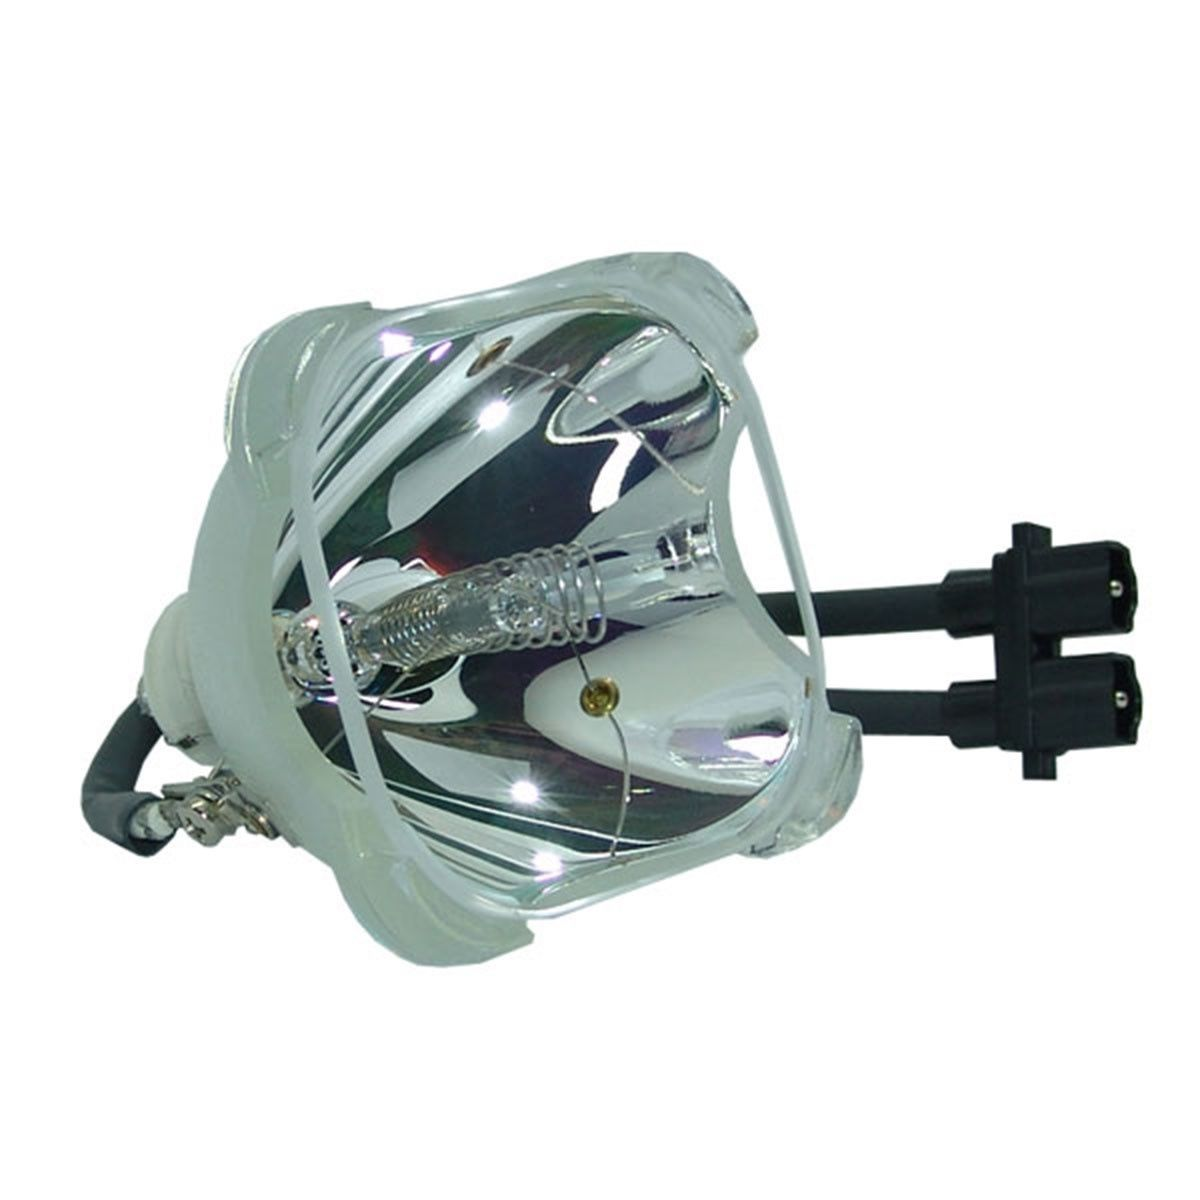 Compatible Bare Bulb EP8775iLK 78-6969-9548-5 for 3M MP8775 MP8775i MP8795 Projector Lamp Bulbs without housing